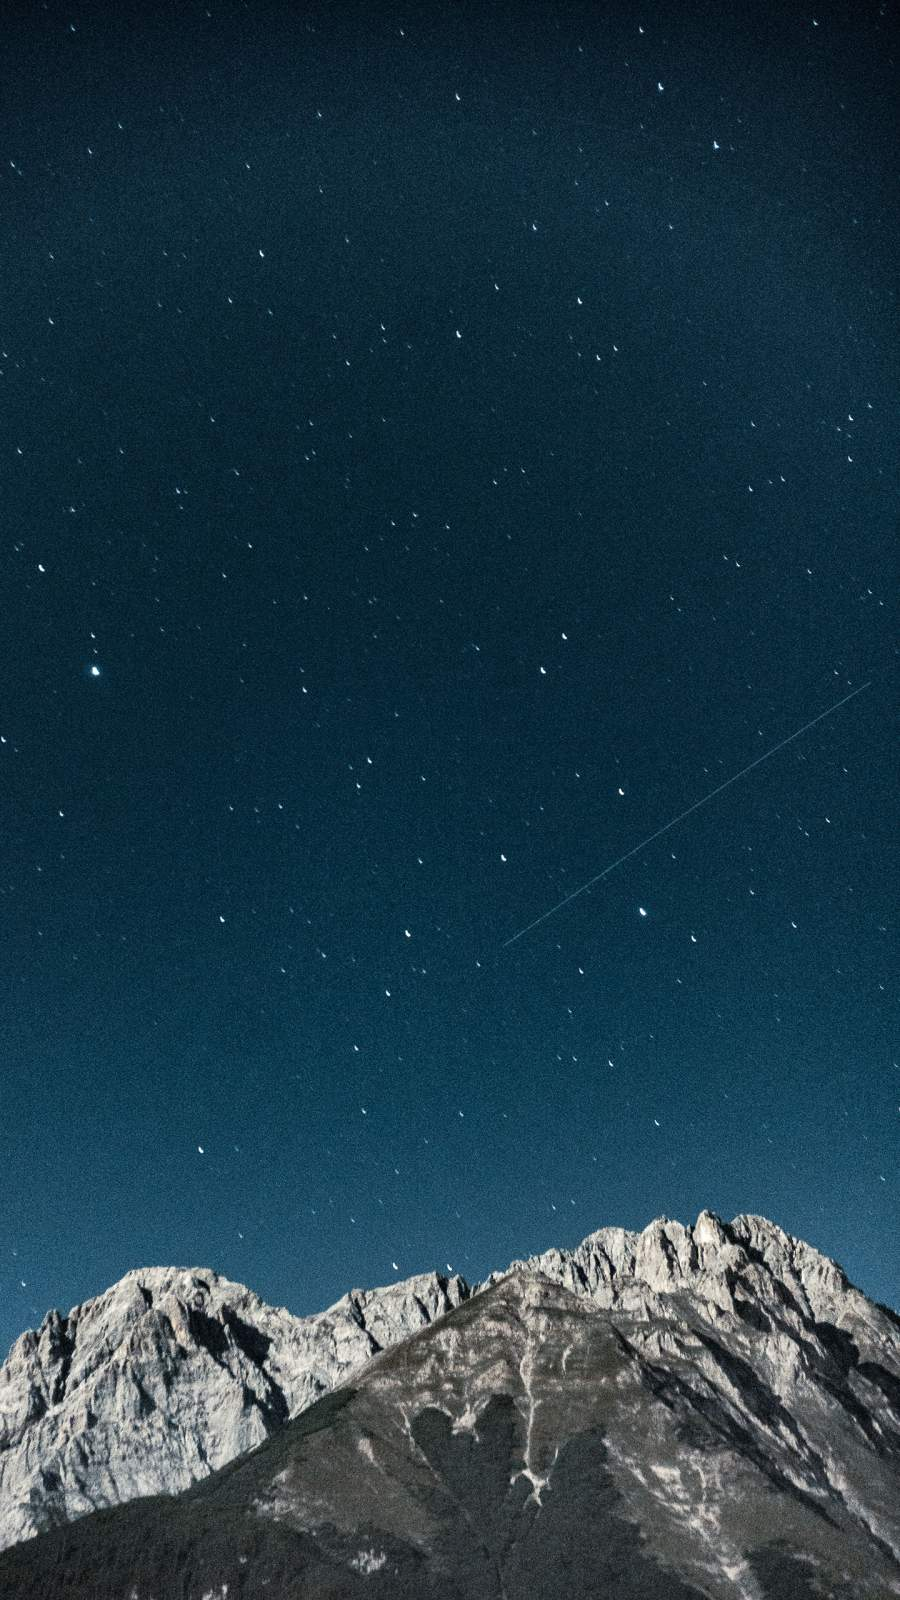 Shooting Star Over The Mountains iPhone Wallpaper